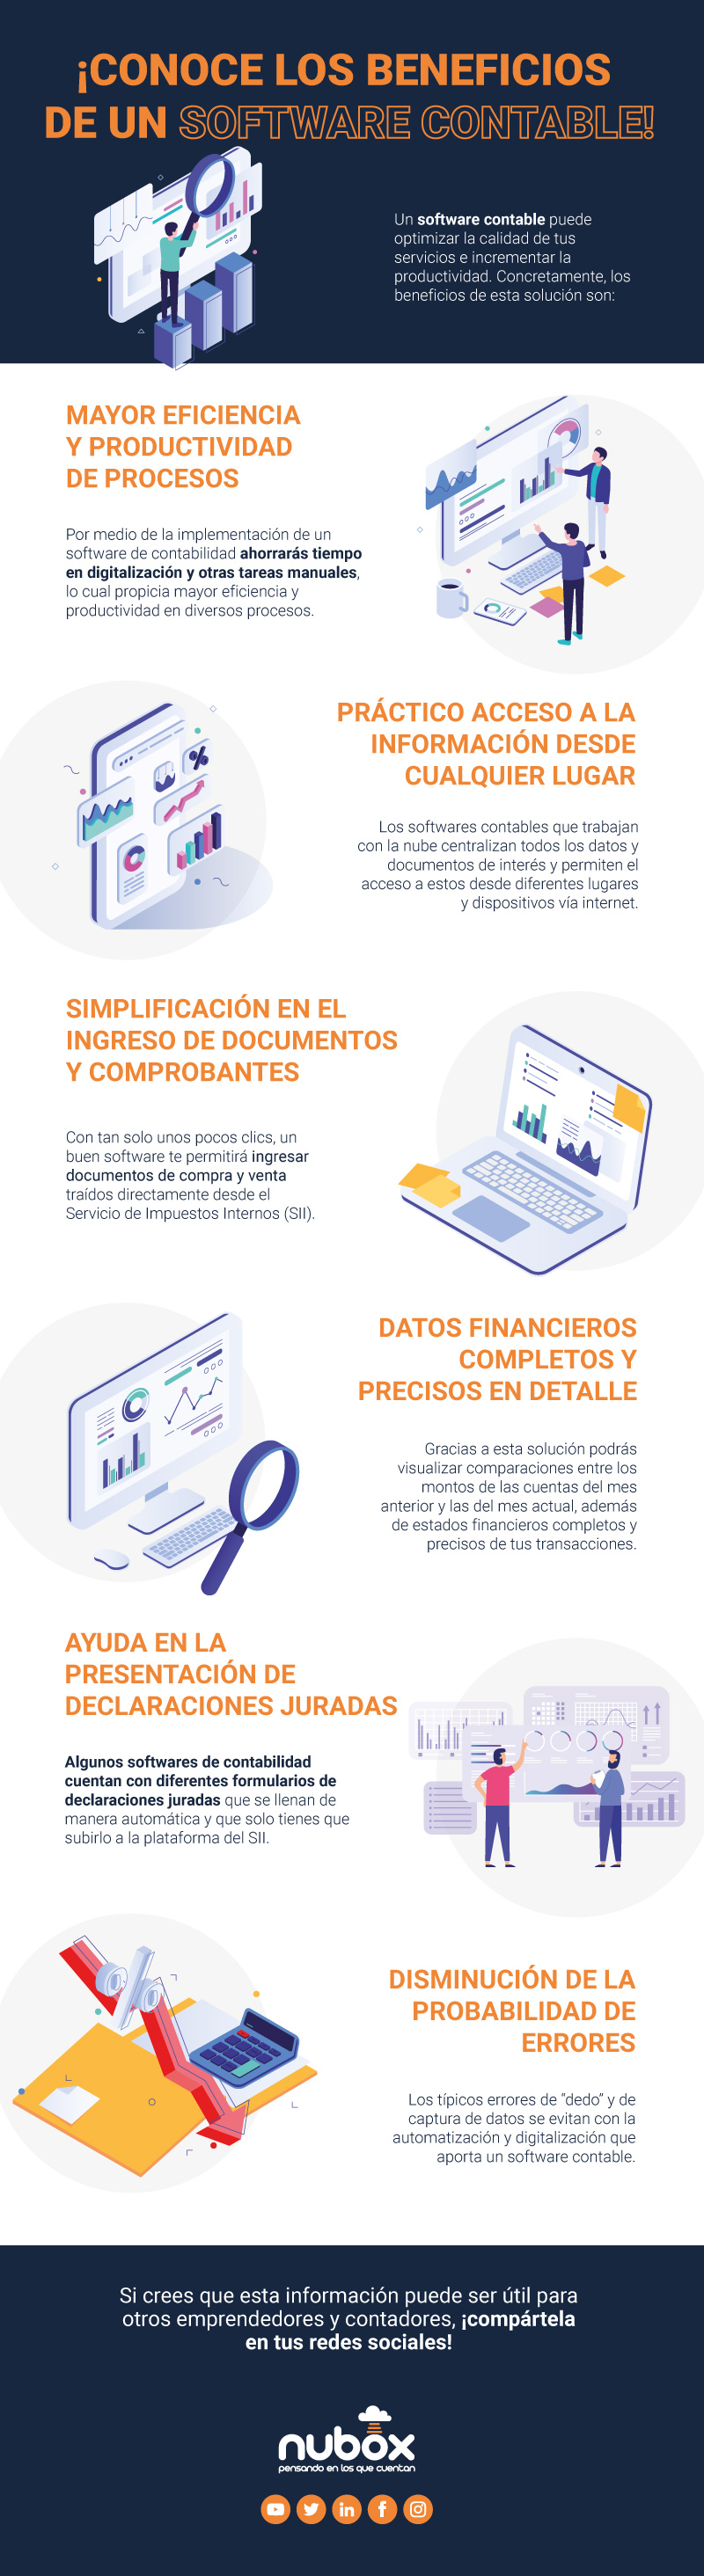 Conoce los beneficios de un software contable (1)